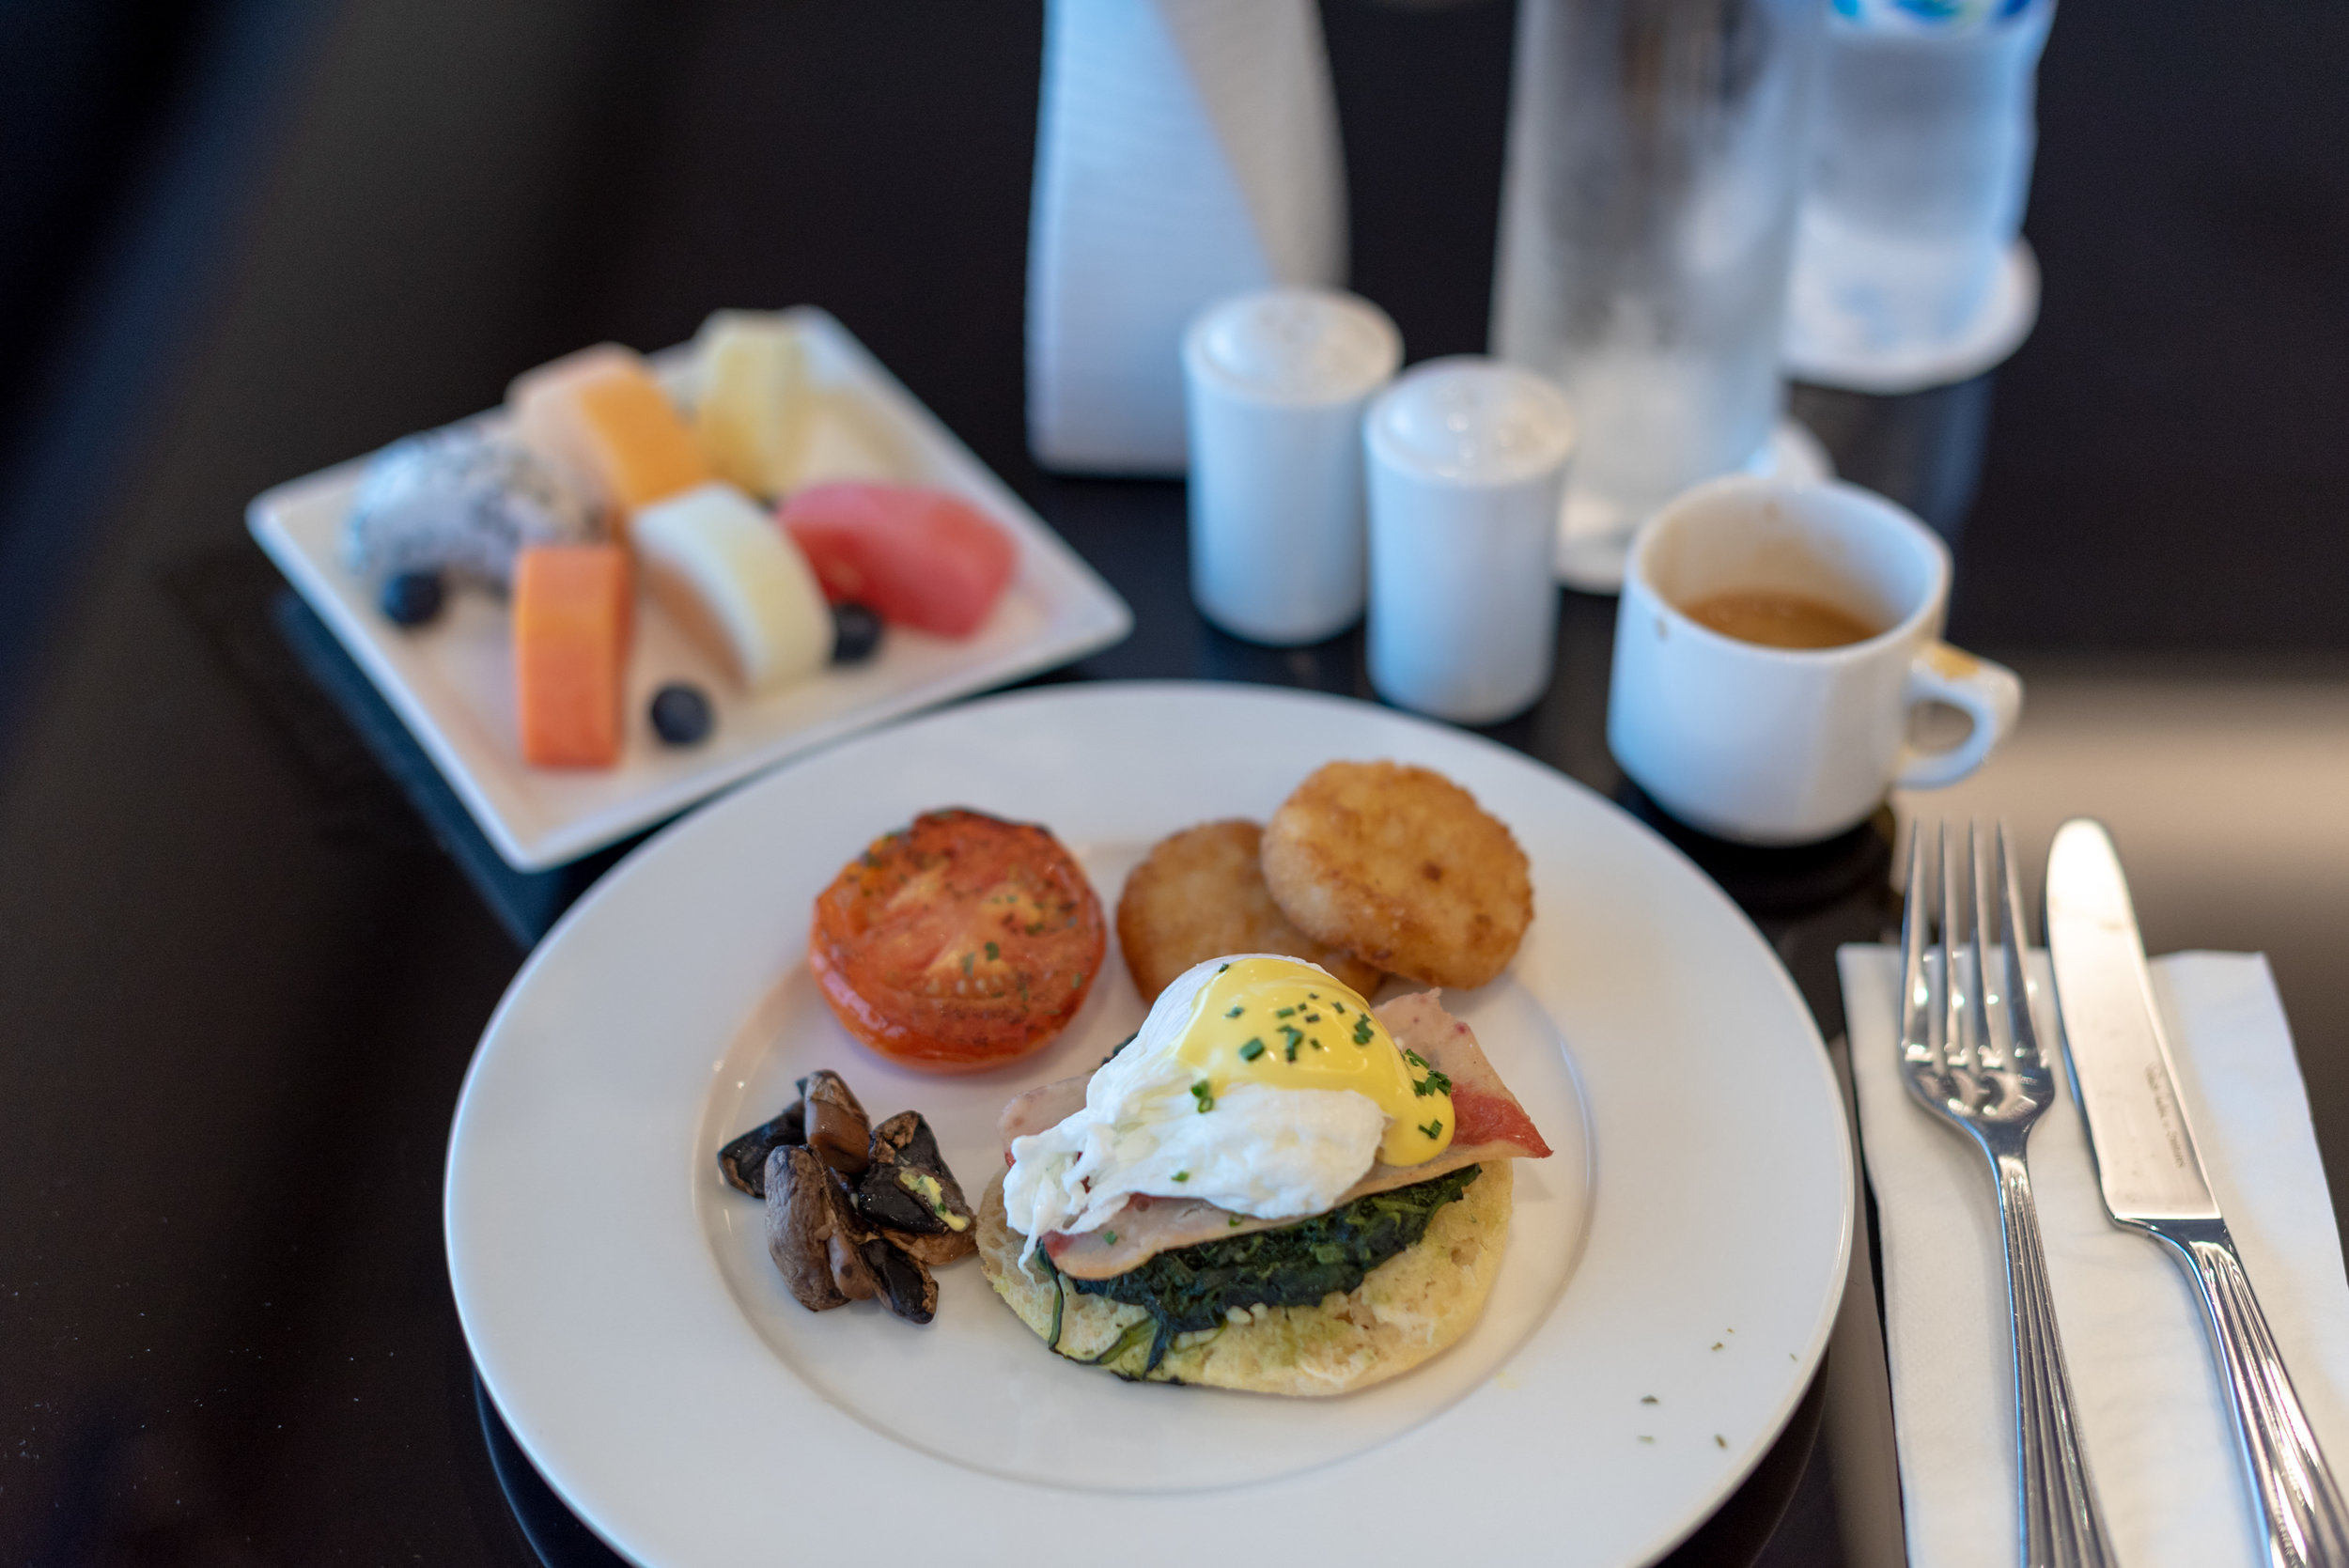 Breakfast   The Emirates Lounge - Singapore Changi Airport (SIN)